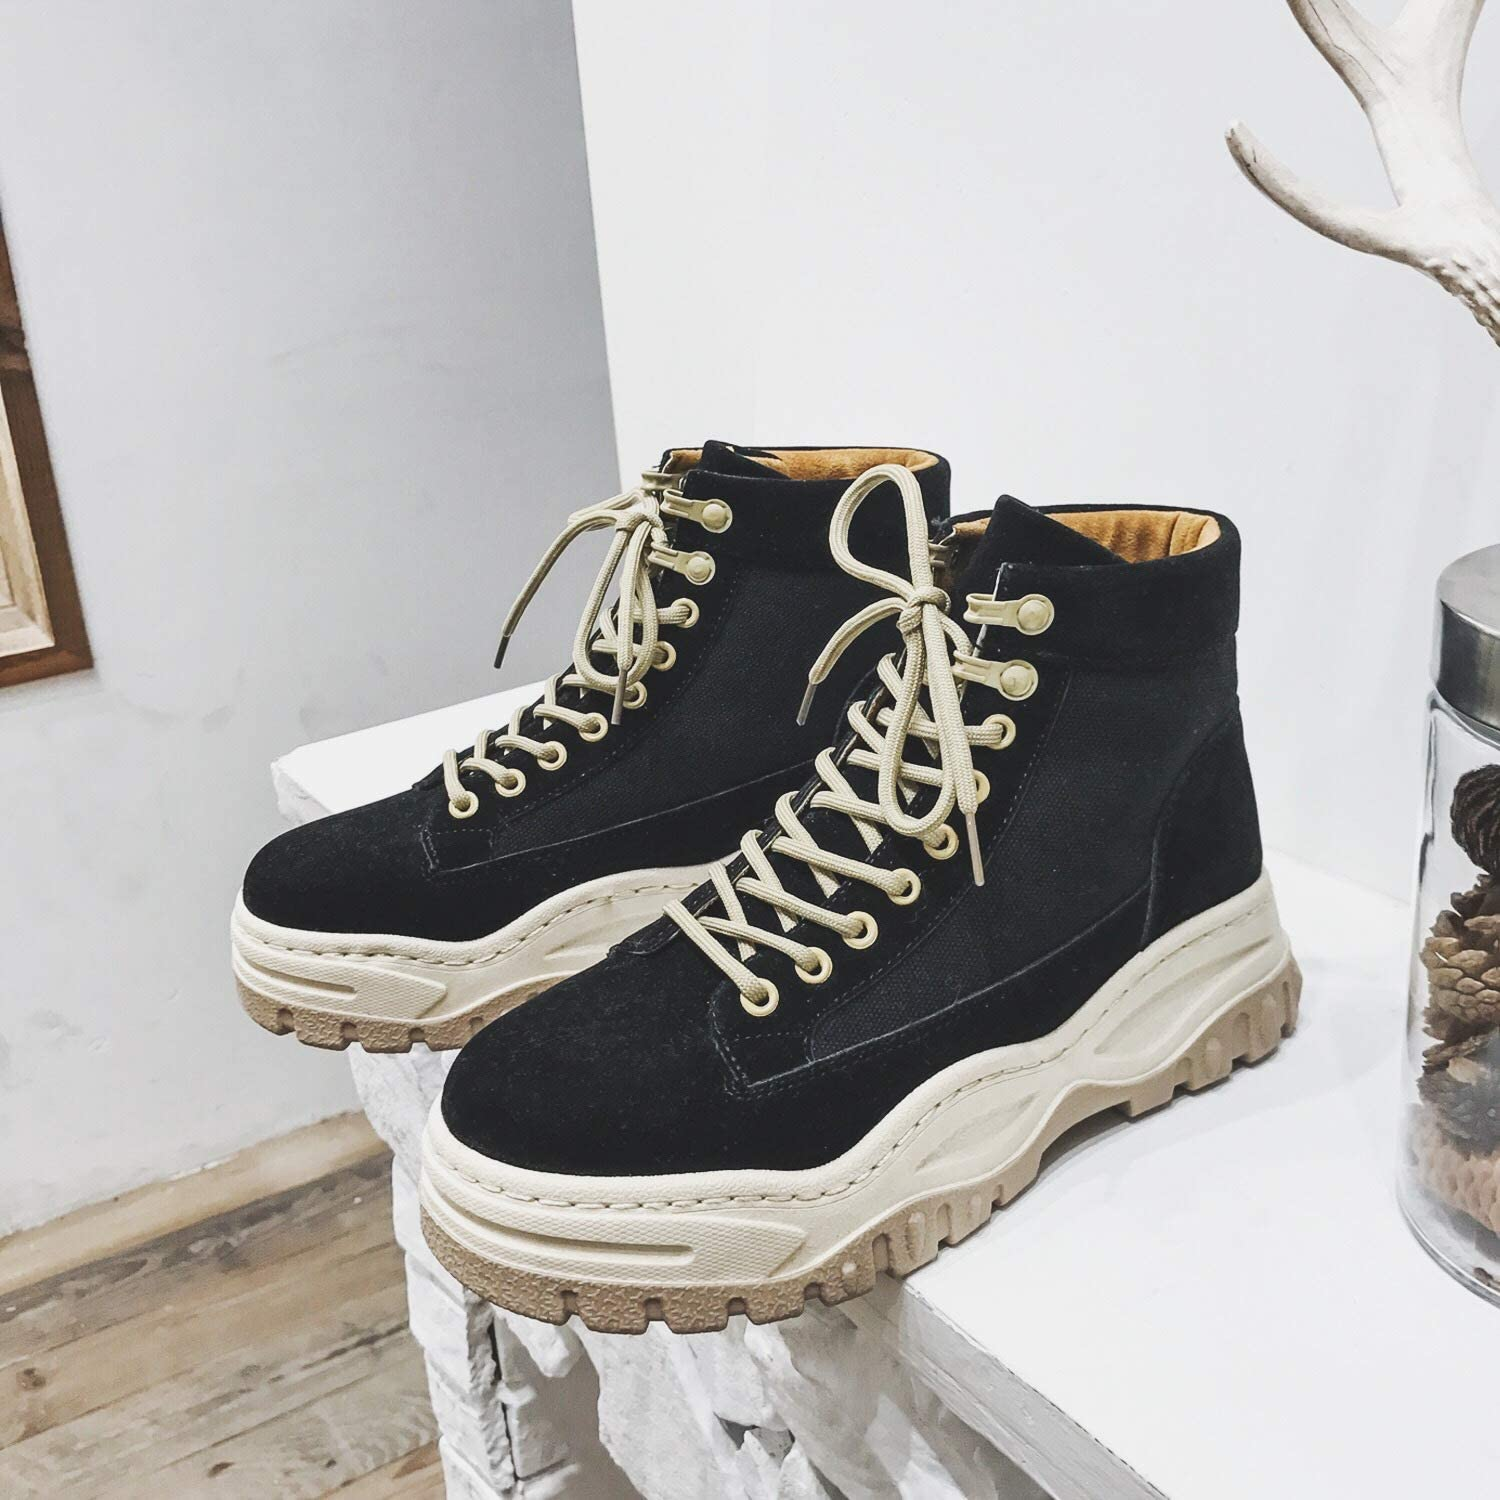 LOVDRAM Boots Men's Thick Winter High Boots Martin Boots Increase Casual Tooling shoes Men'S shoes